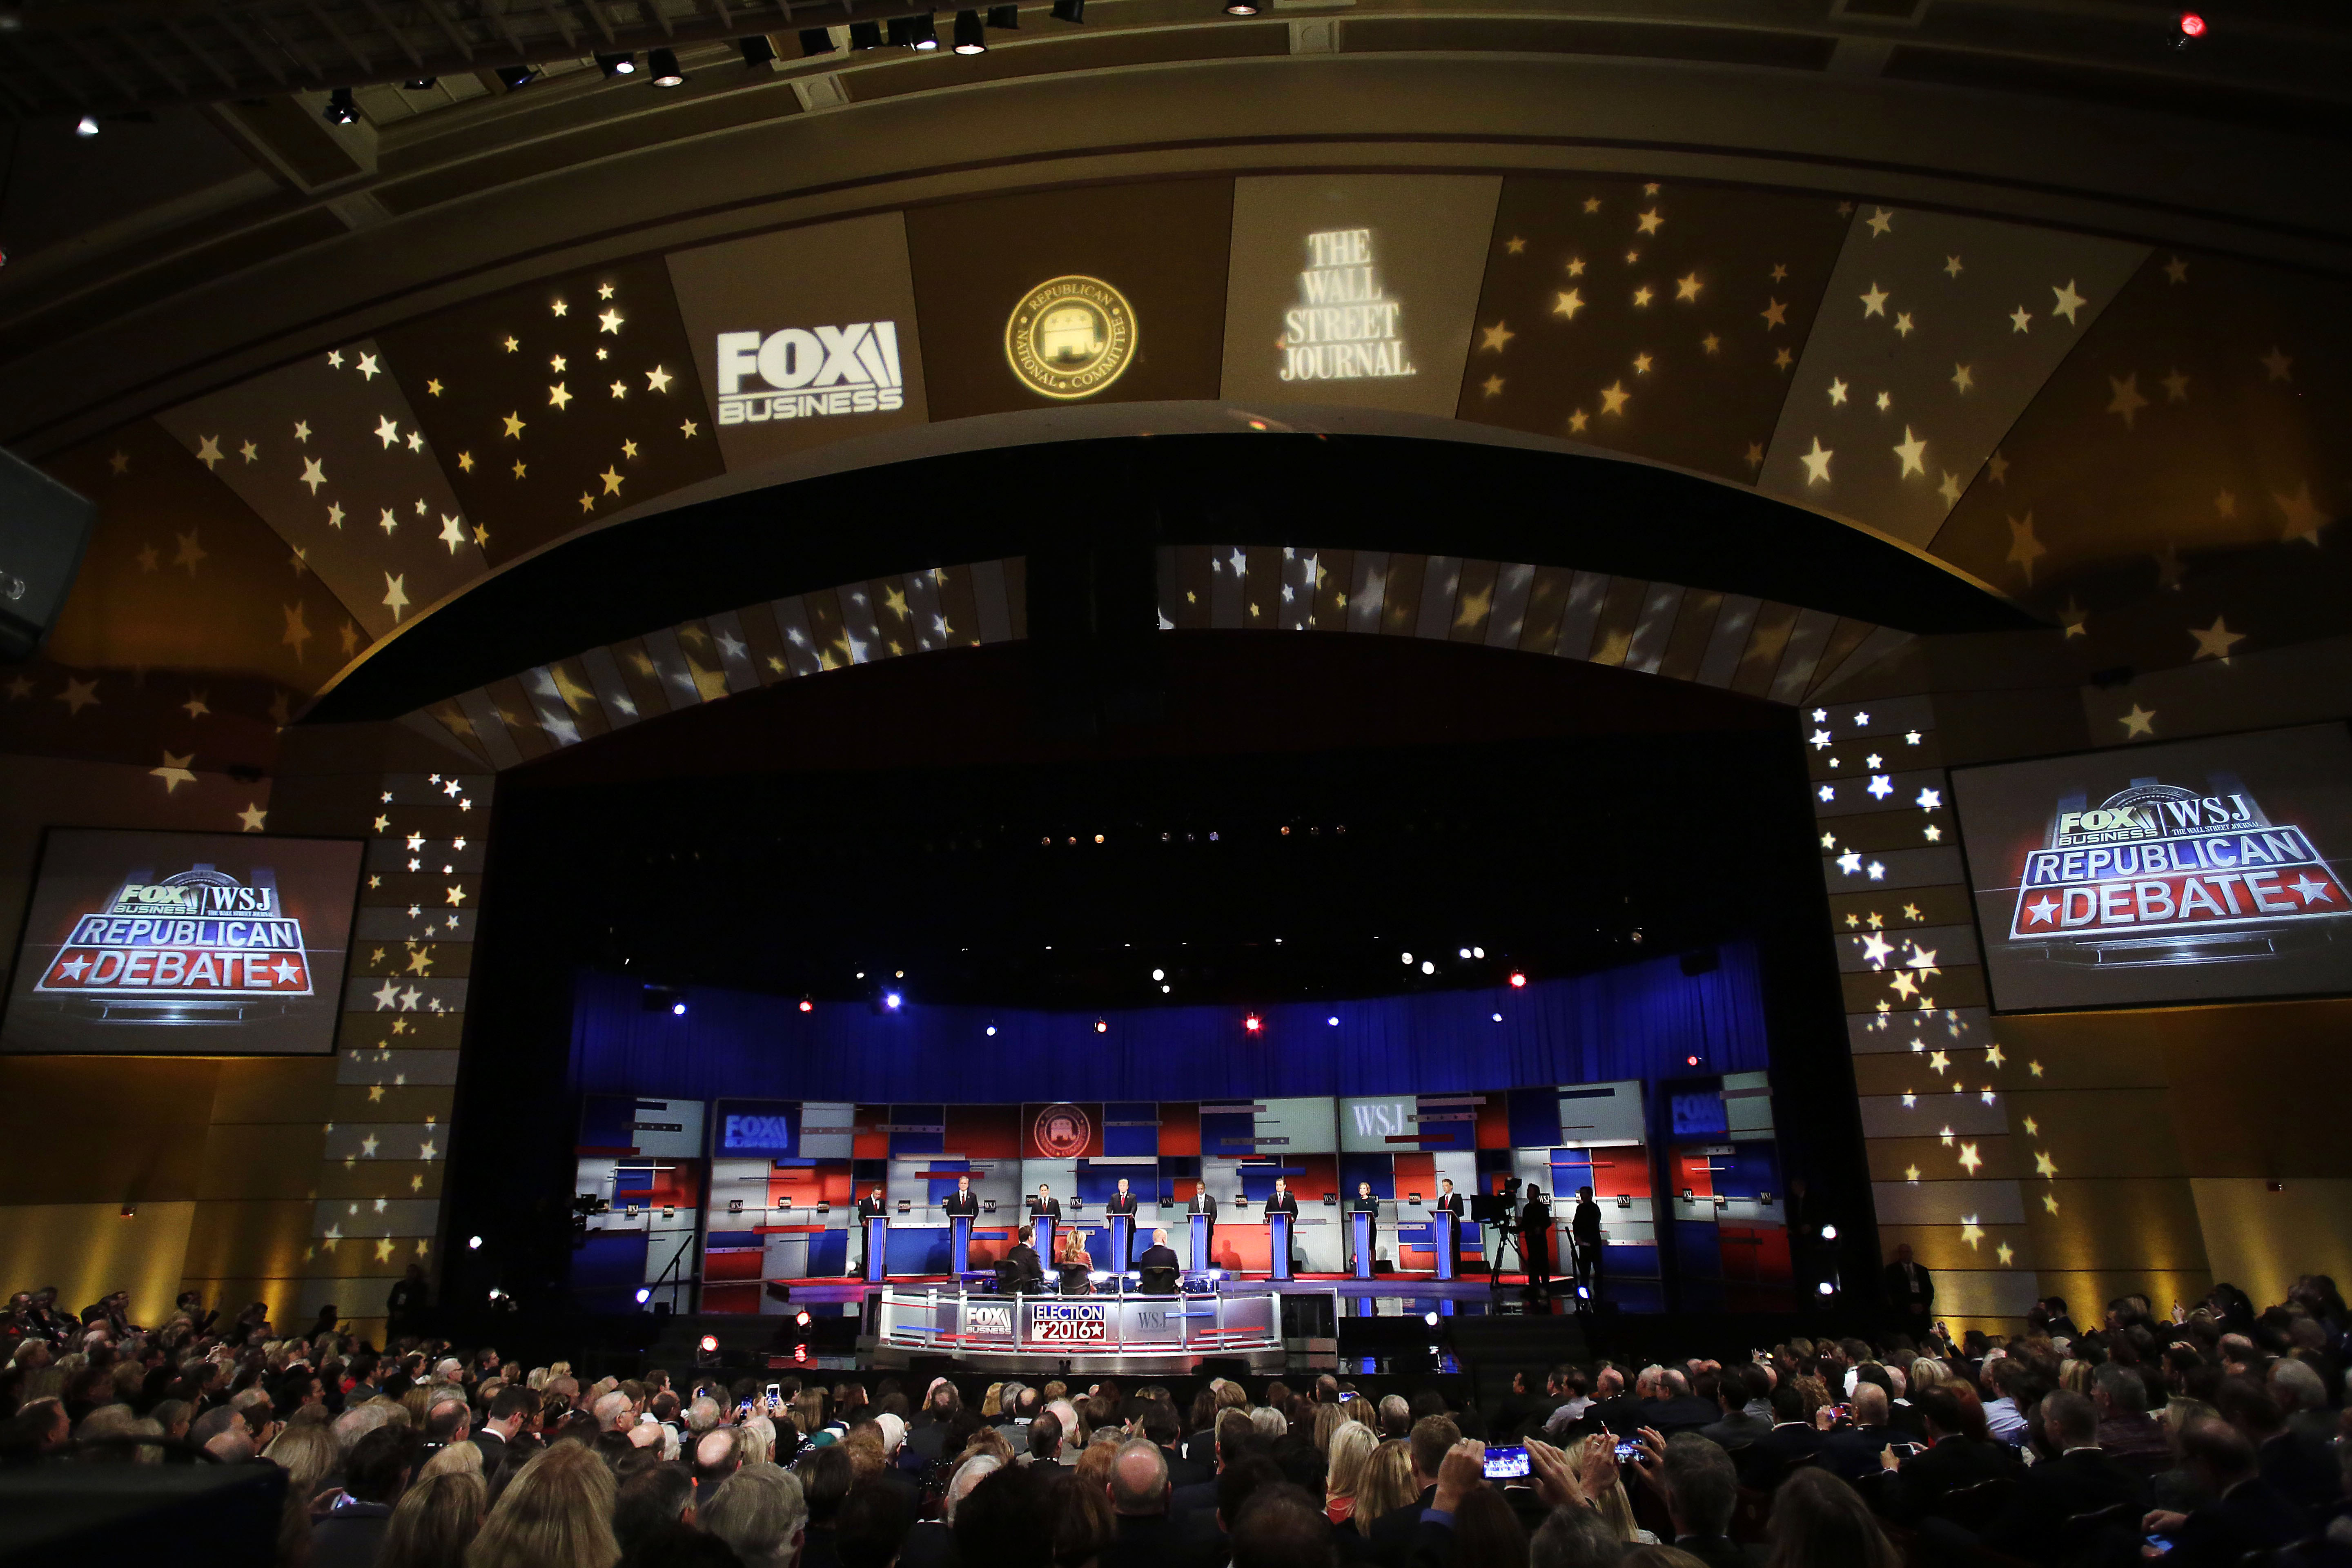 The stage during the Republican Presidential Debate hosted by Fox Business and The Wall Street Journal on Nov. 10, 2015 in Milwaukee.